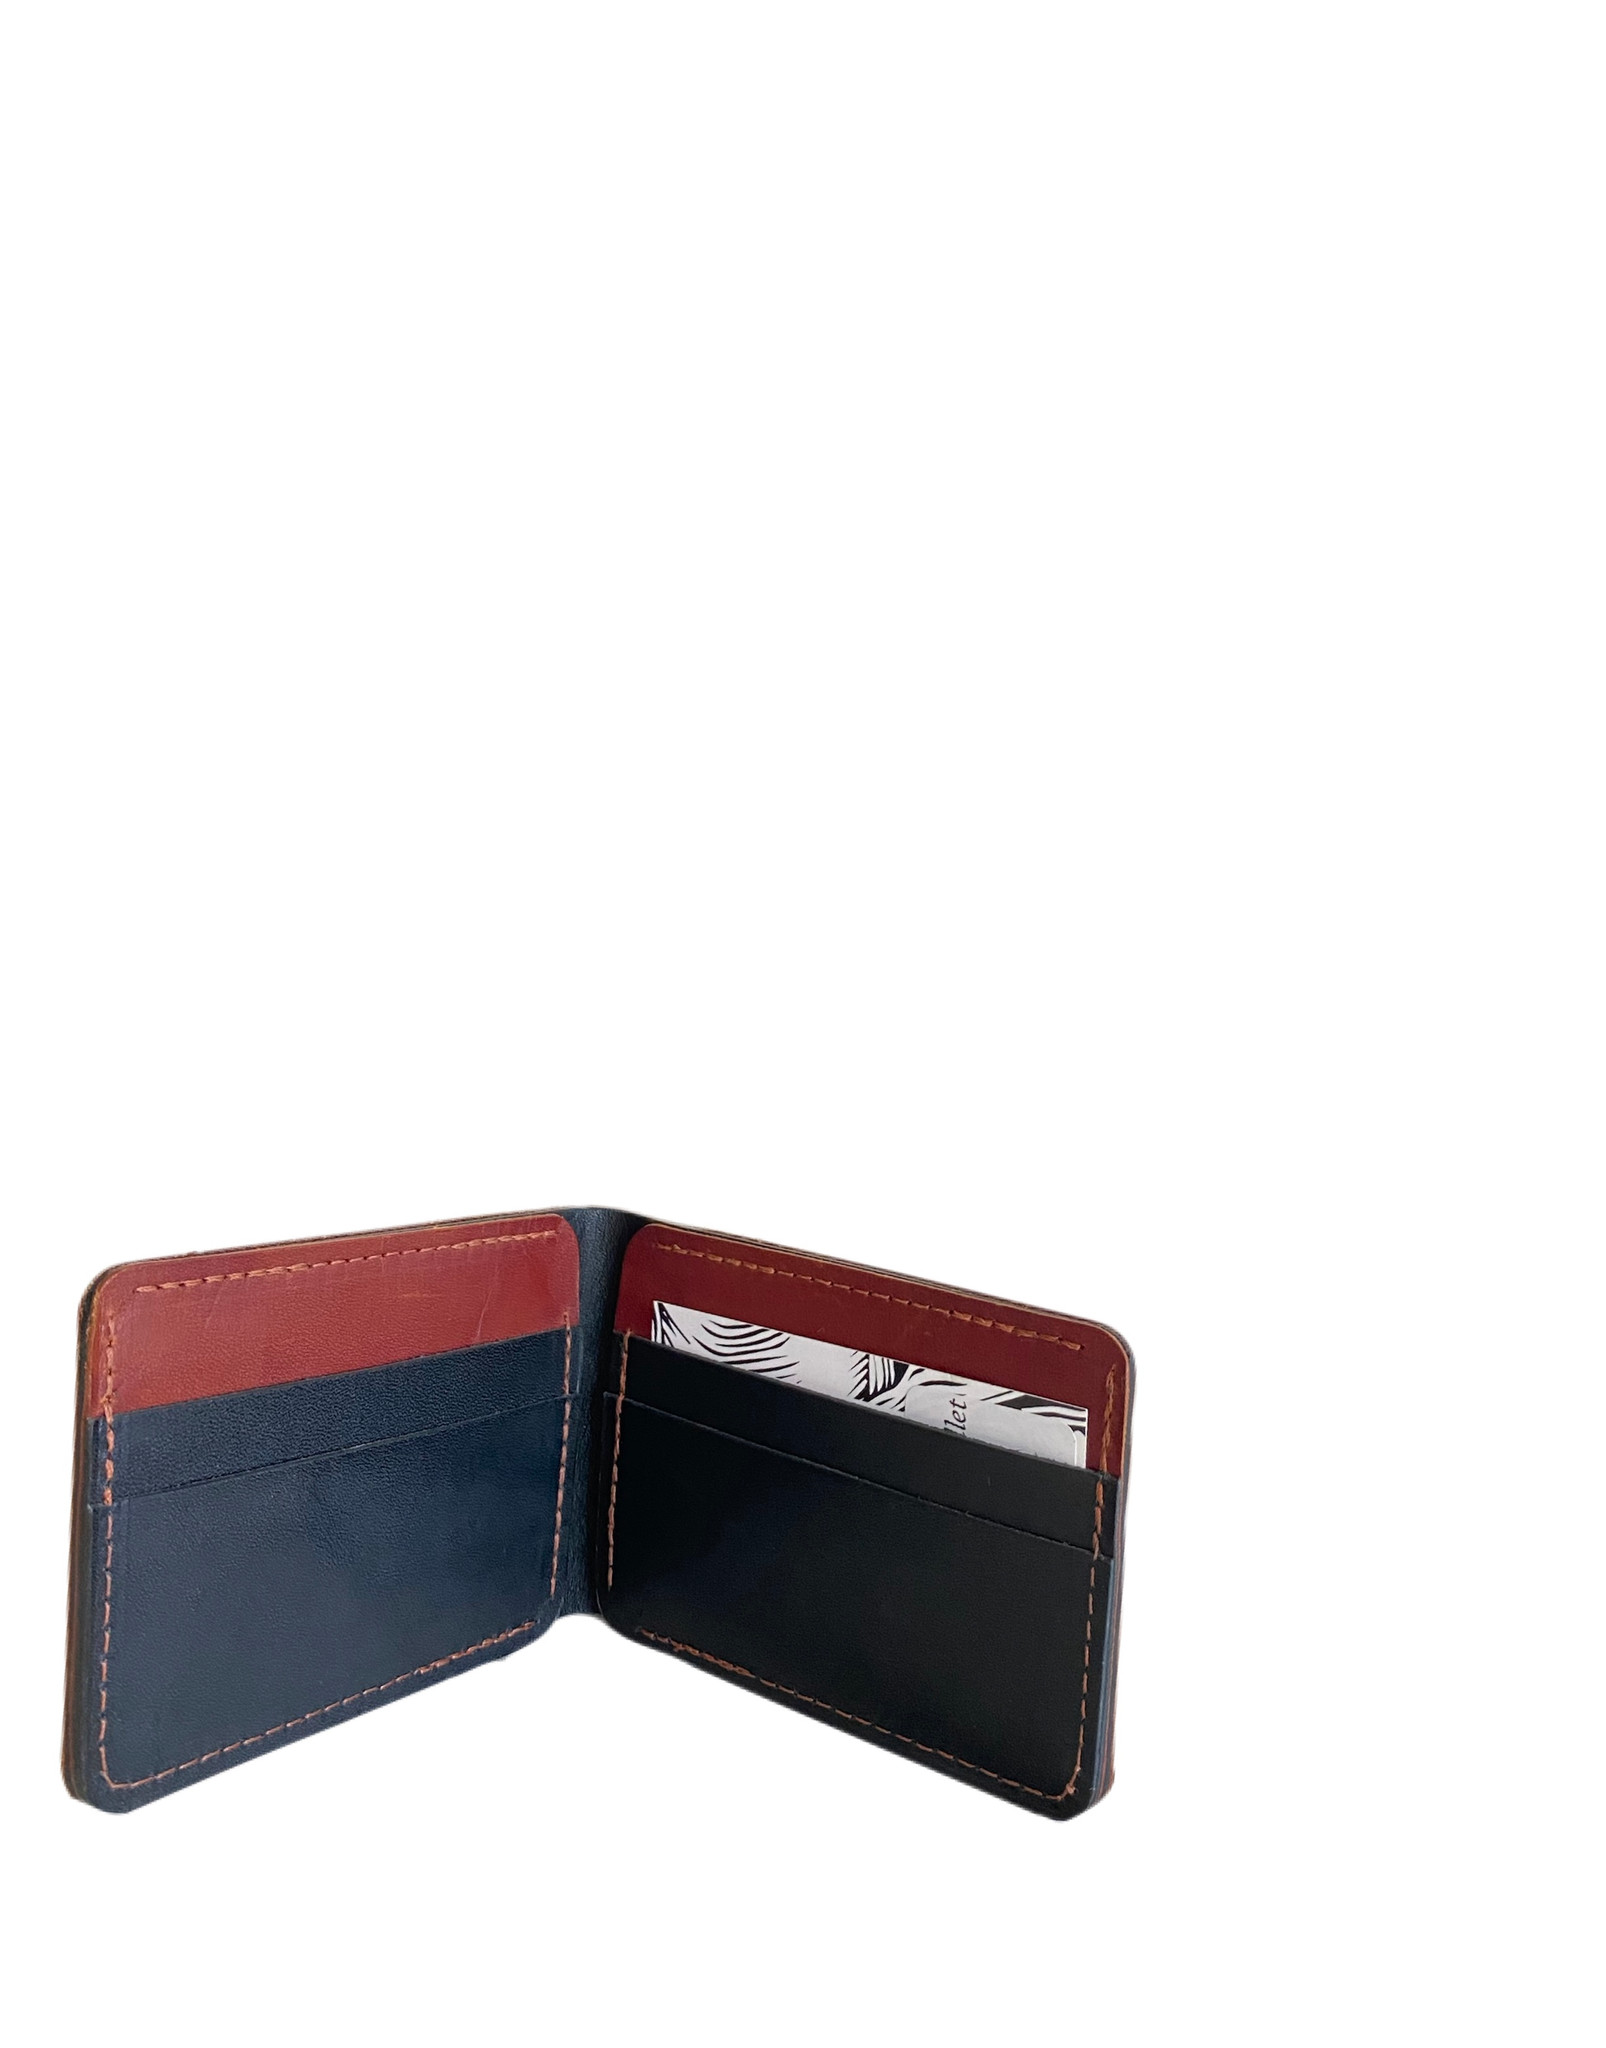 Hold Supply Leather Bi-fold Wallet